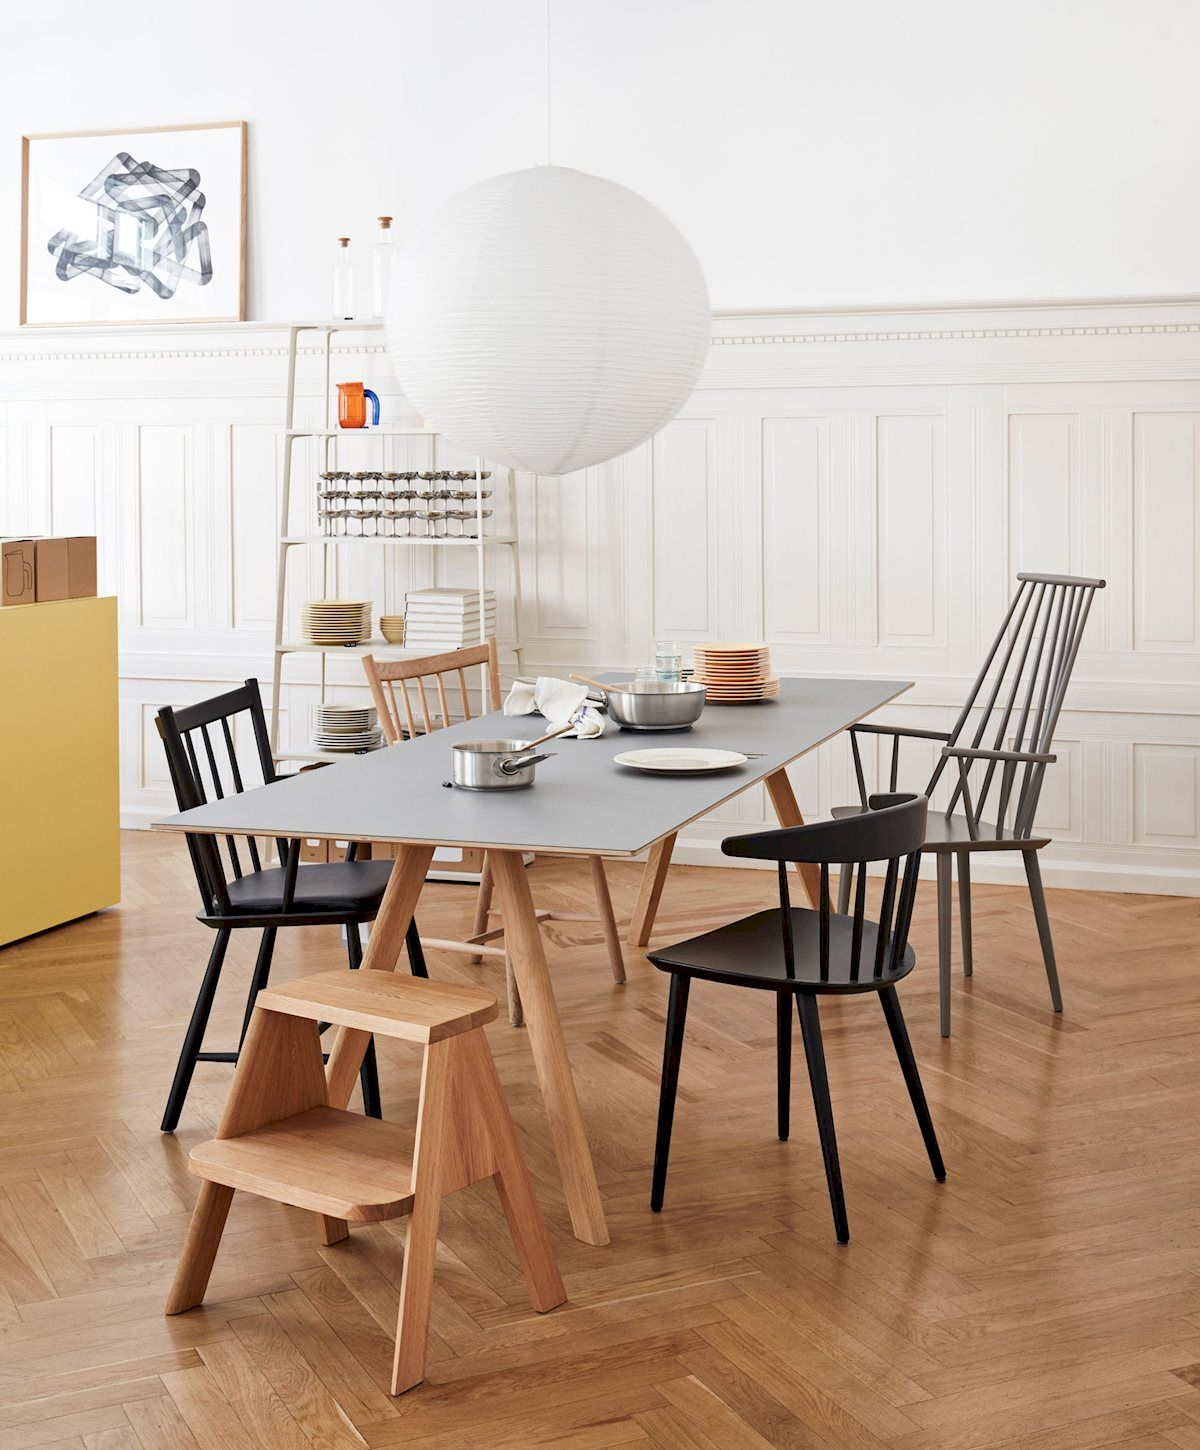 Hay S Dining Collection January 2019 Dining Room Design Dining Chairs Dining Table